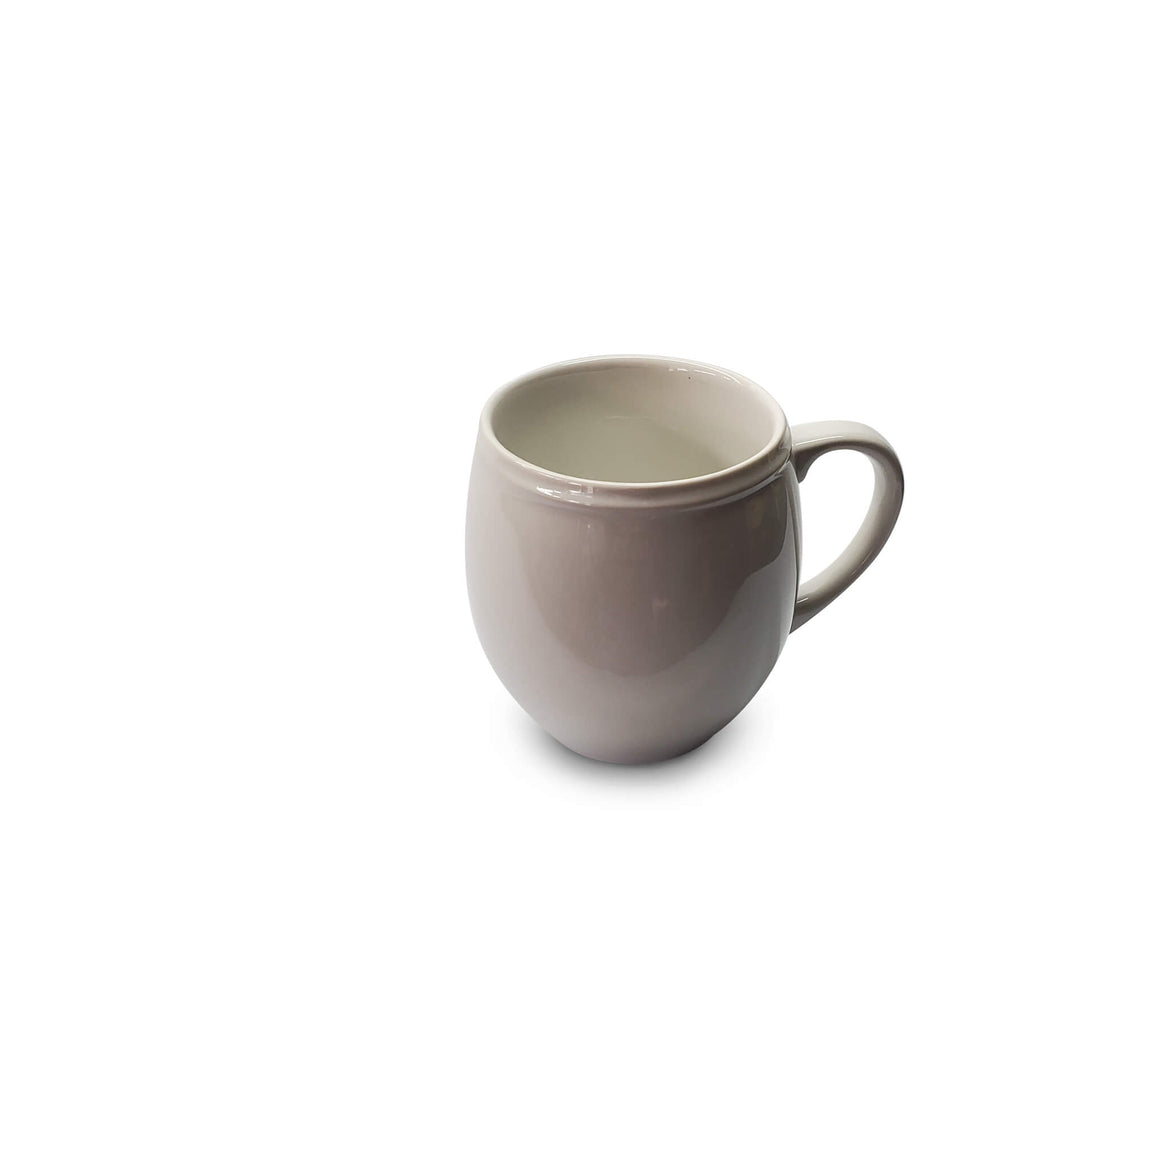 Yesterday's Mug | Gently Used, White Porcelain Mug